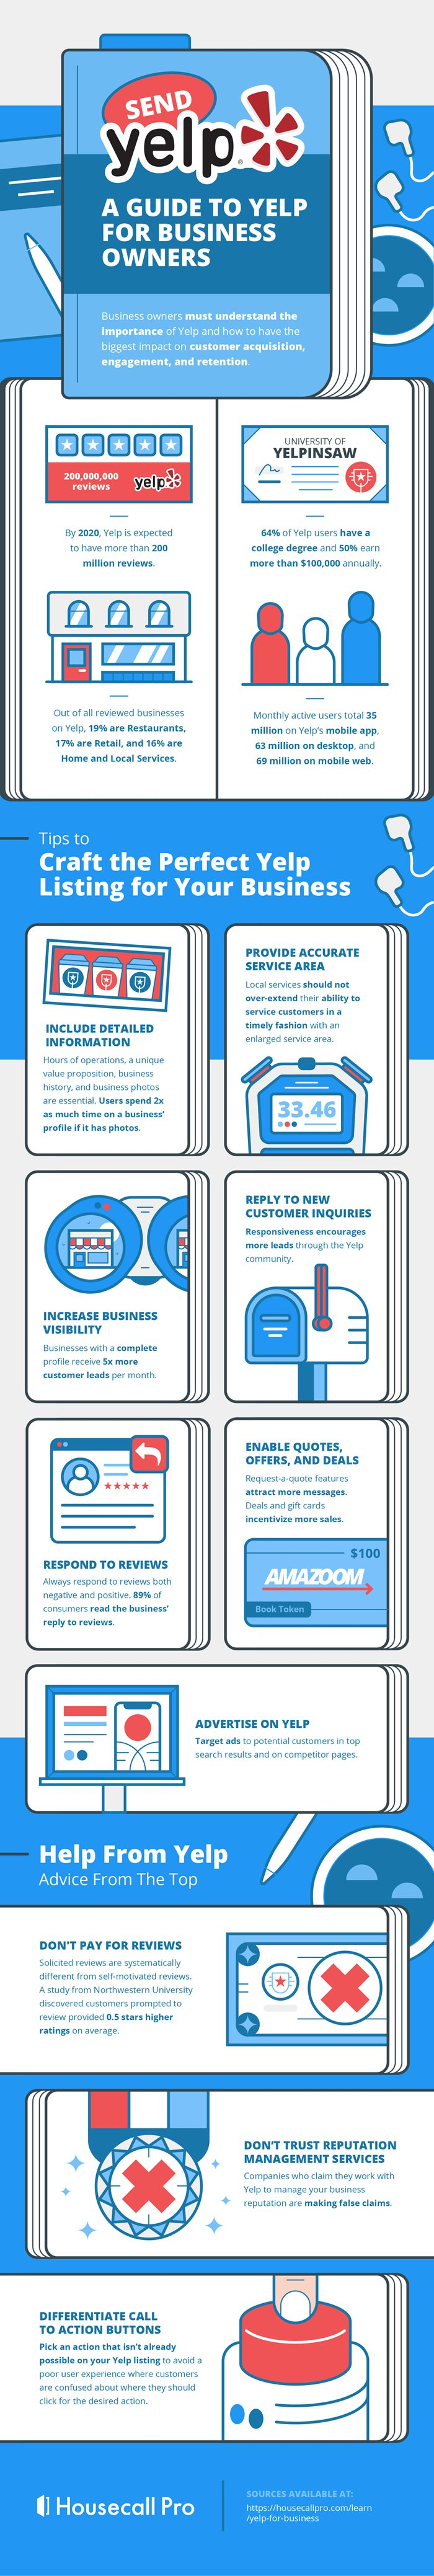 ultimate_guide_to_yelp_for_business_infographic-(1).jpg